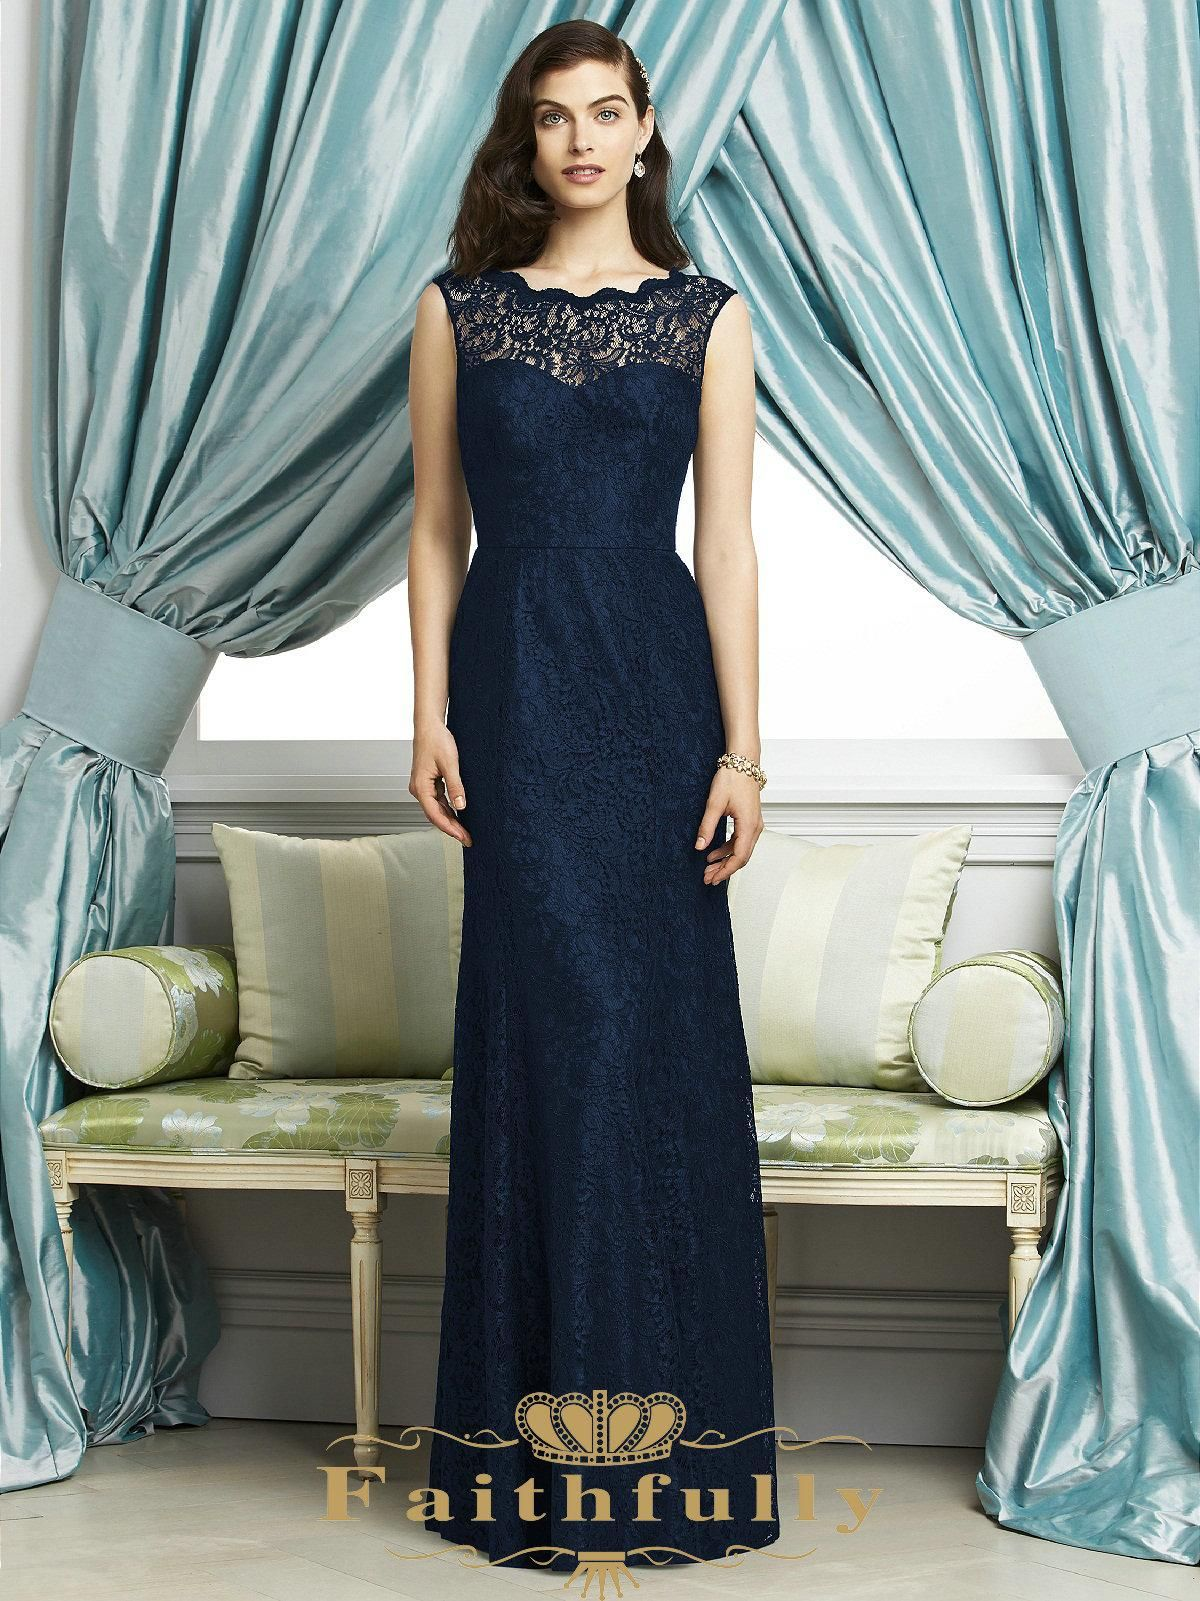 Cheap dessy bridesmaid dresses usa good style dresses cheap dessy bridesmaid dresses usa ombrellifo Gallery